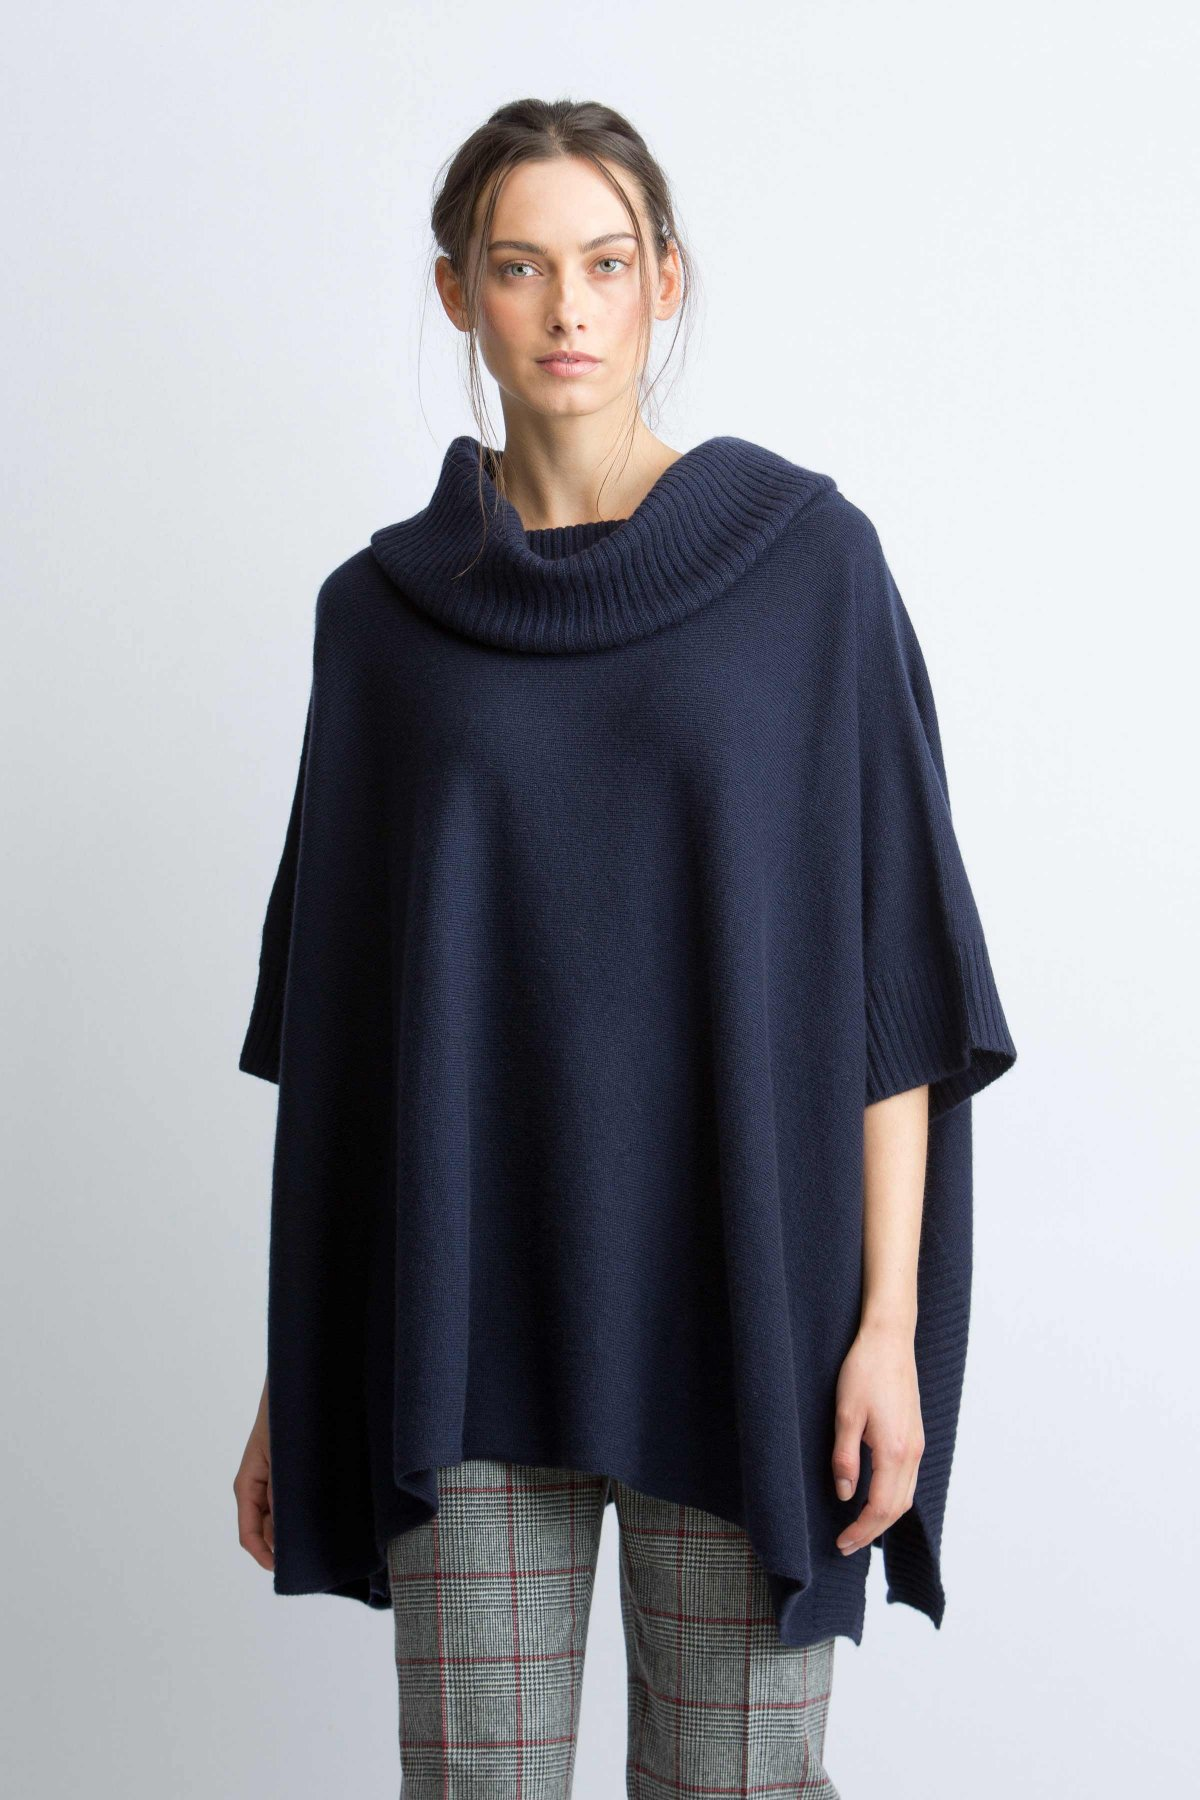 Cashmere poncho cashmere navy cowl neck blanket poncho in navy justqsx